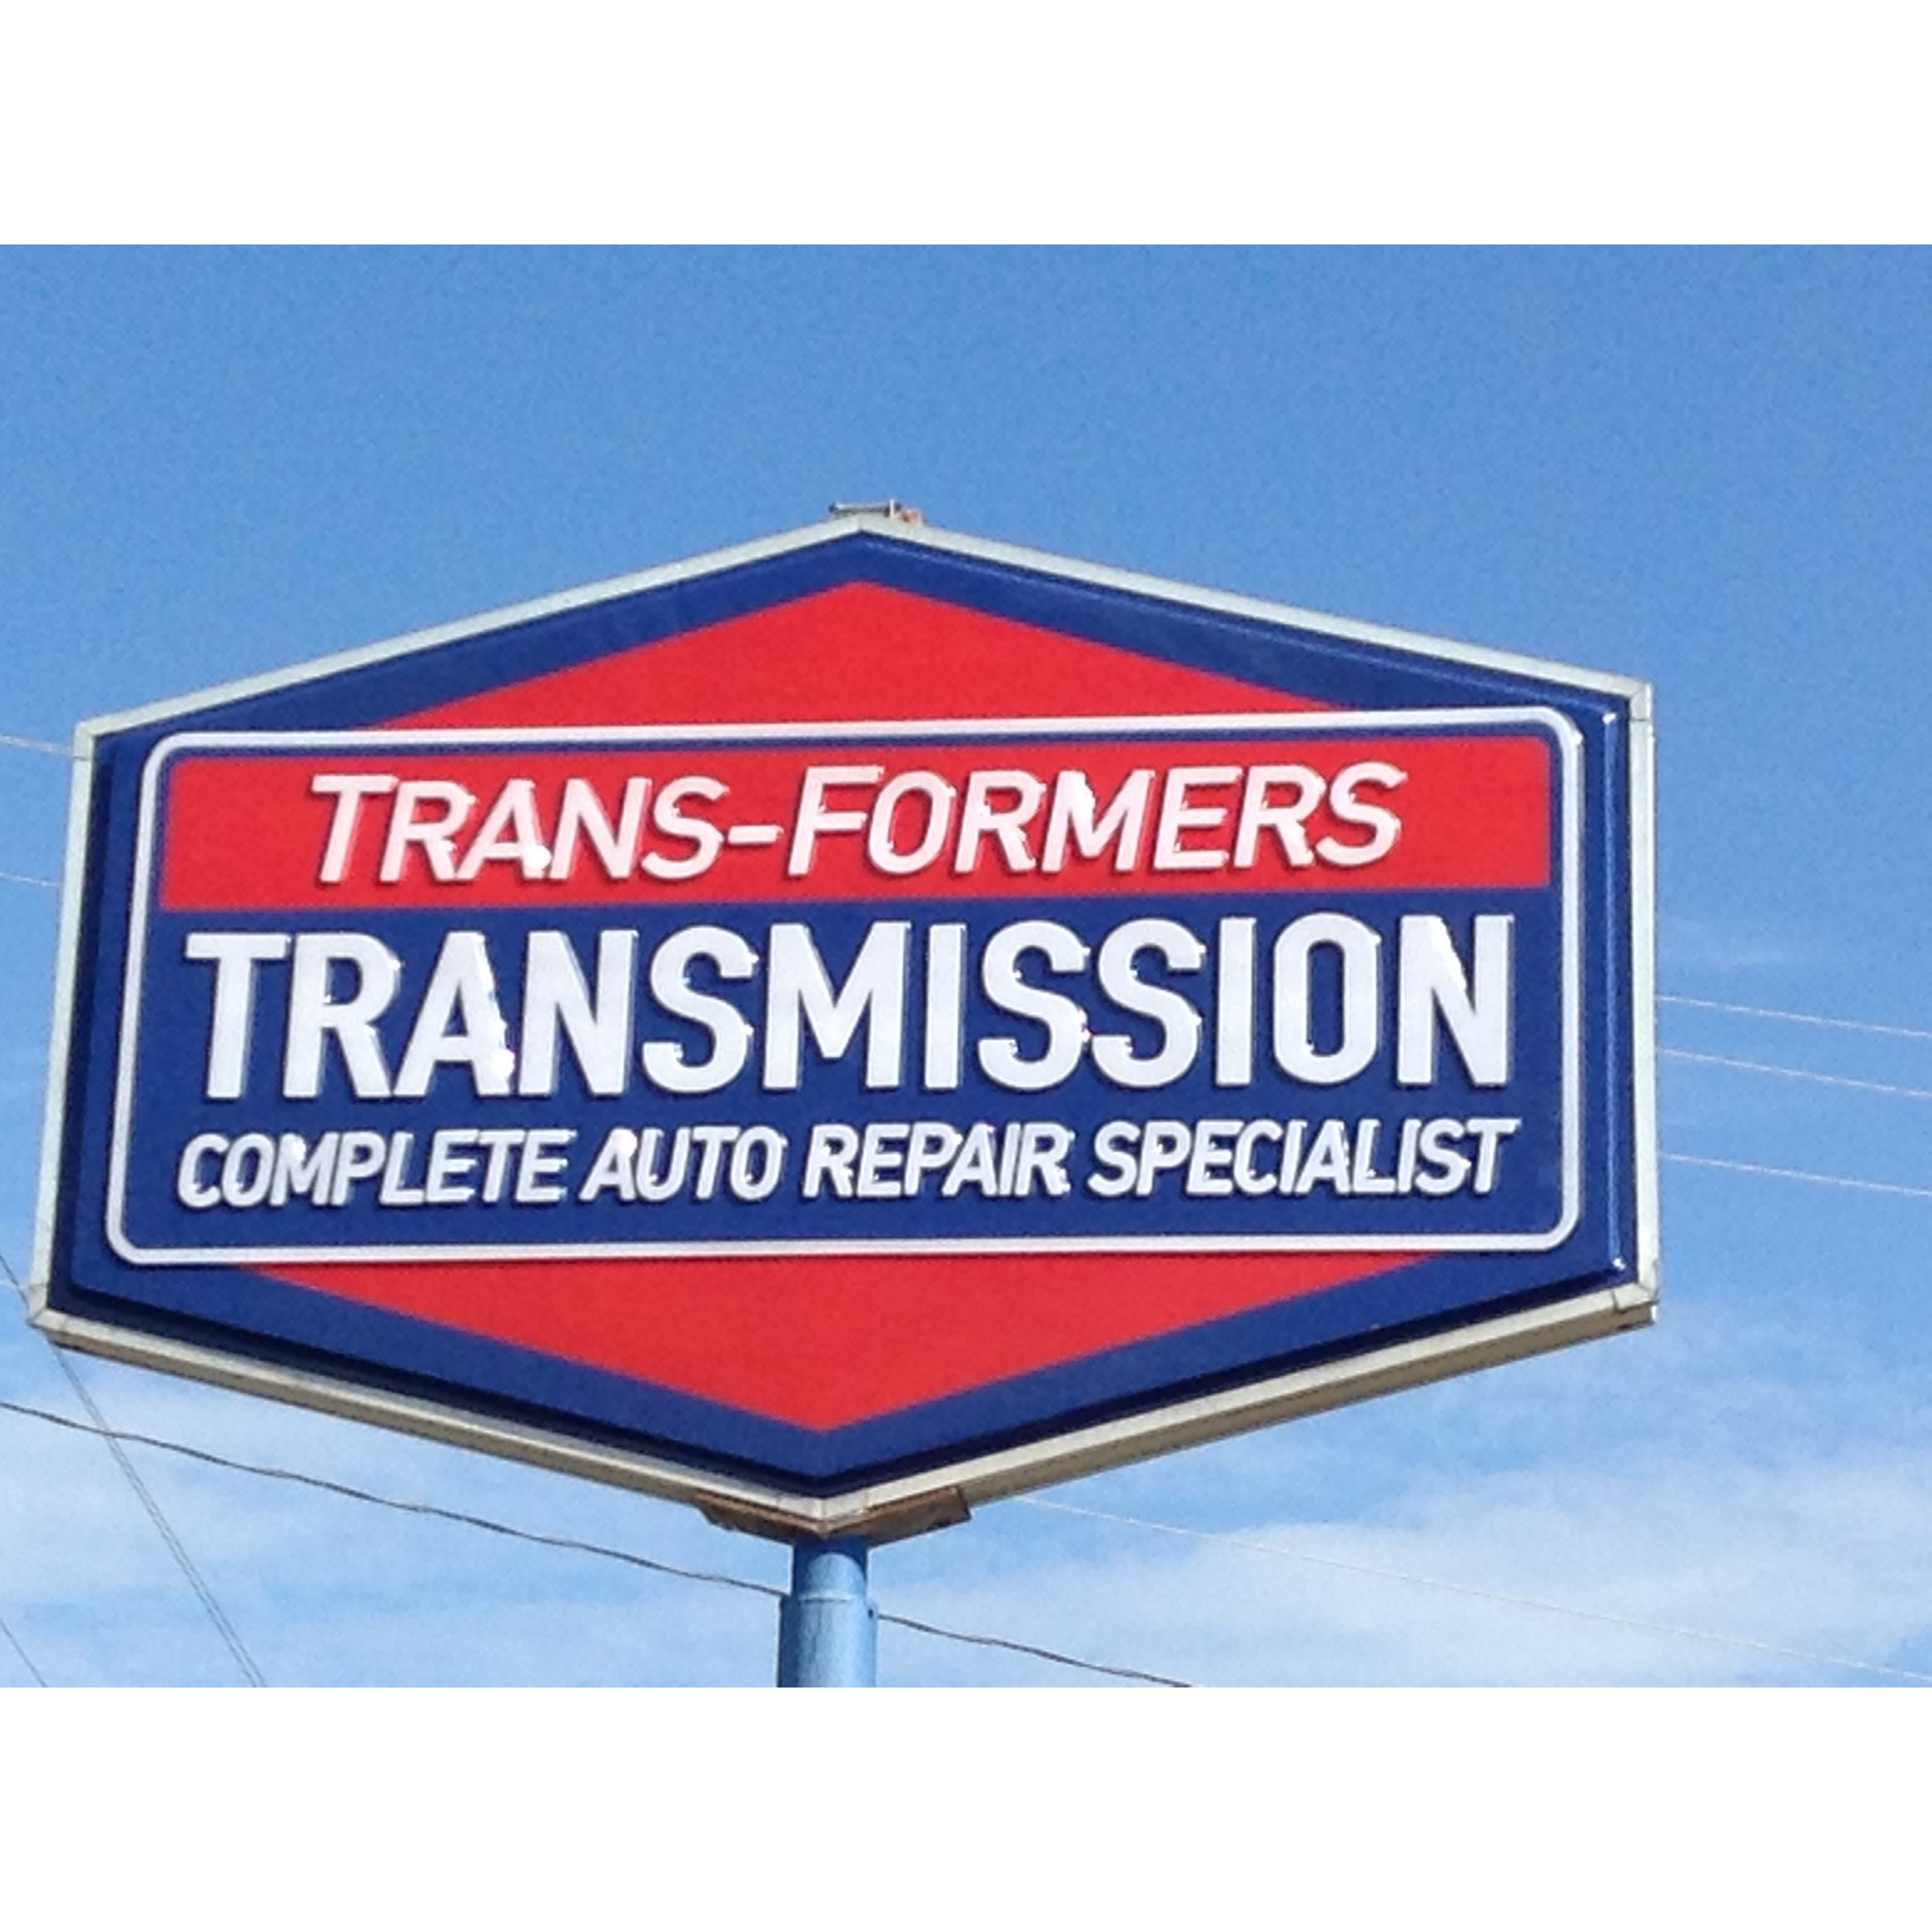 Trans-Formers Transmission & Complete Auto Repair Specialist